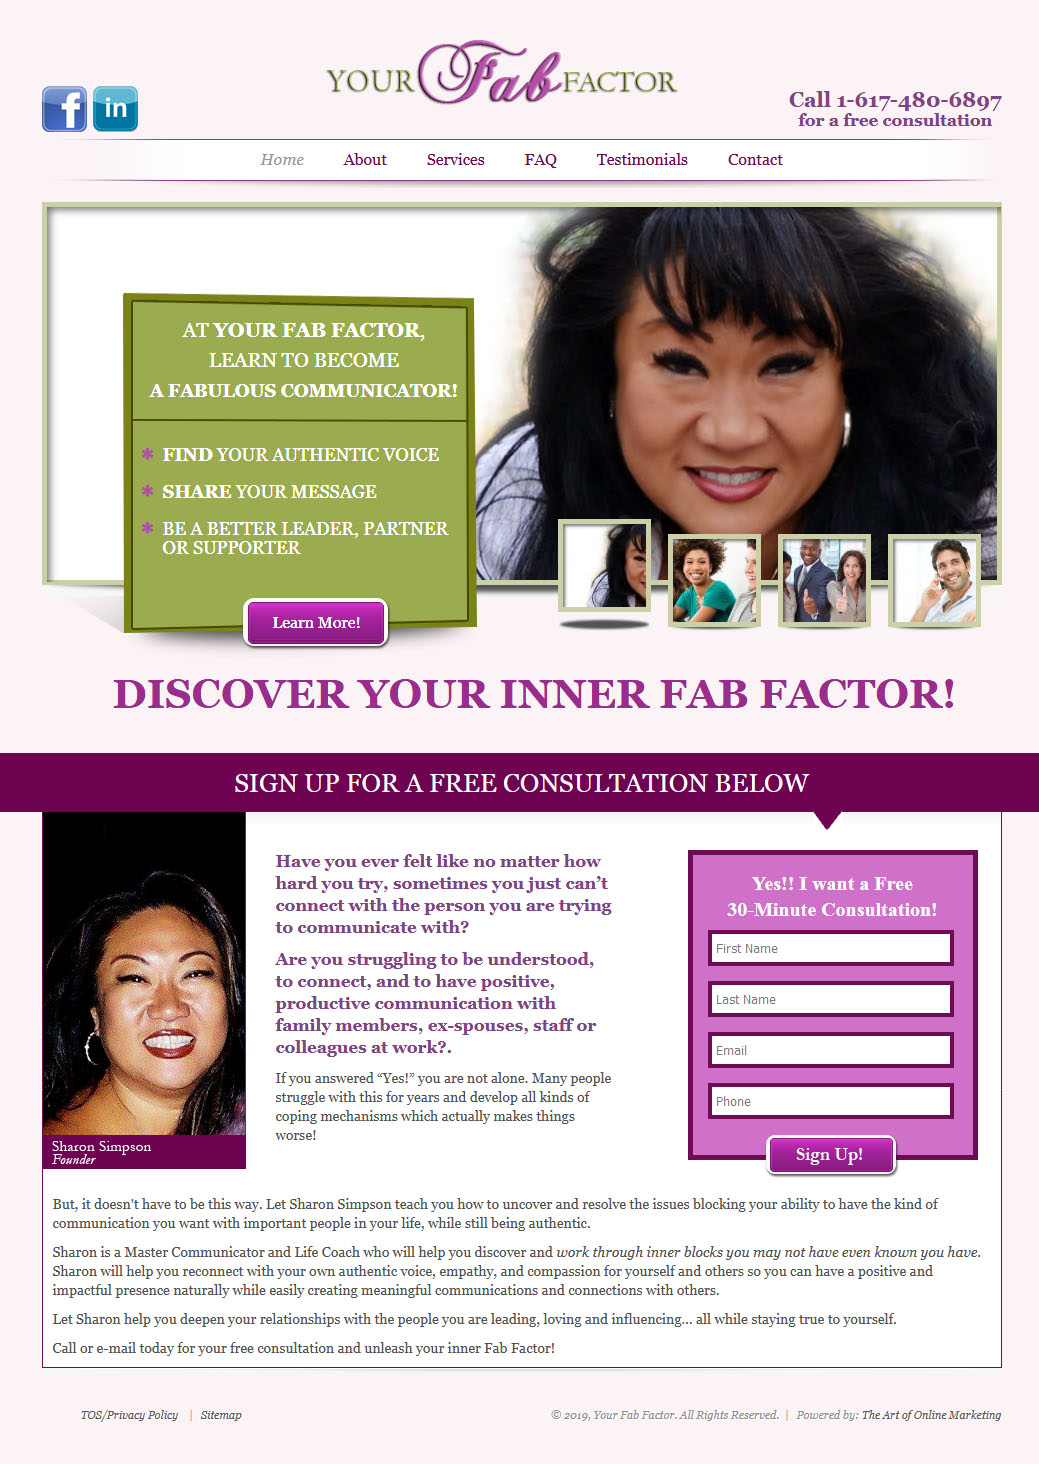 Your Fab Factor